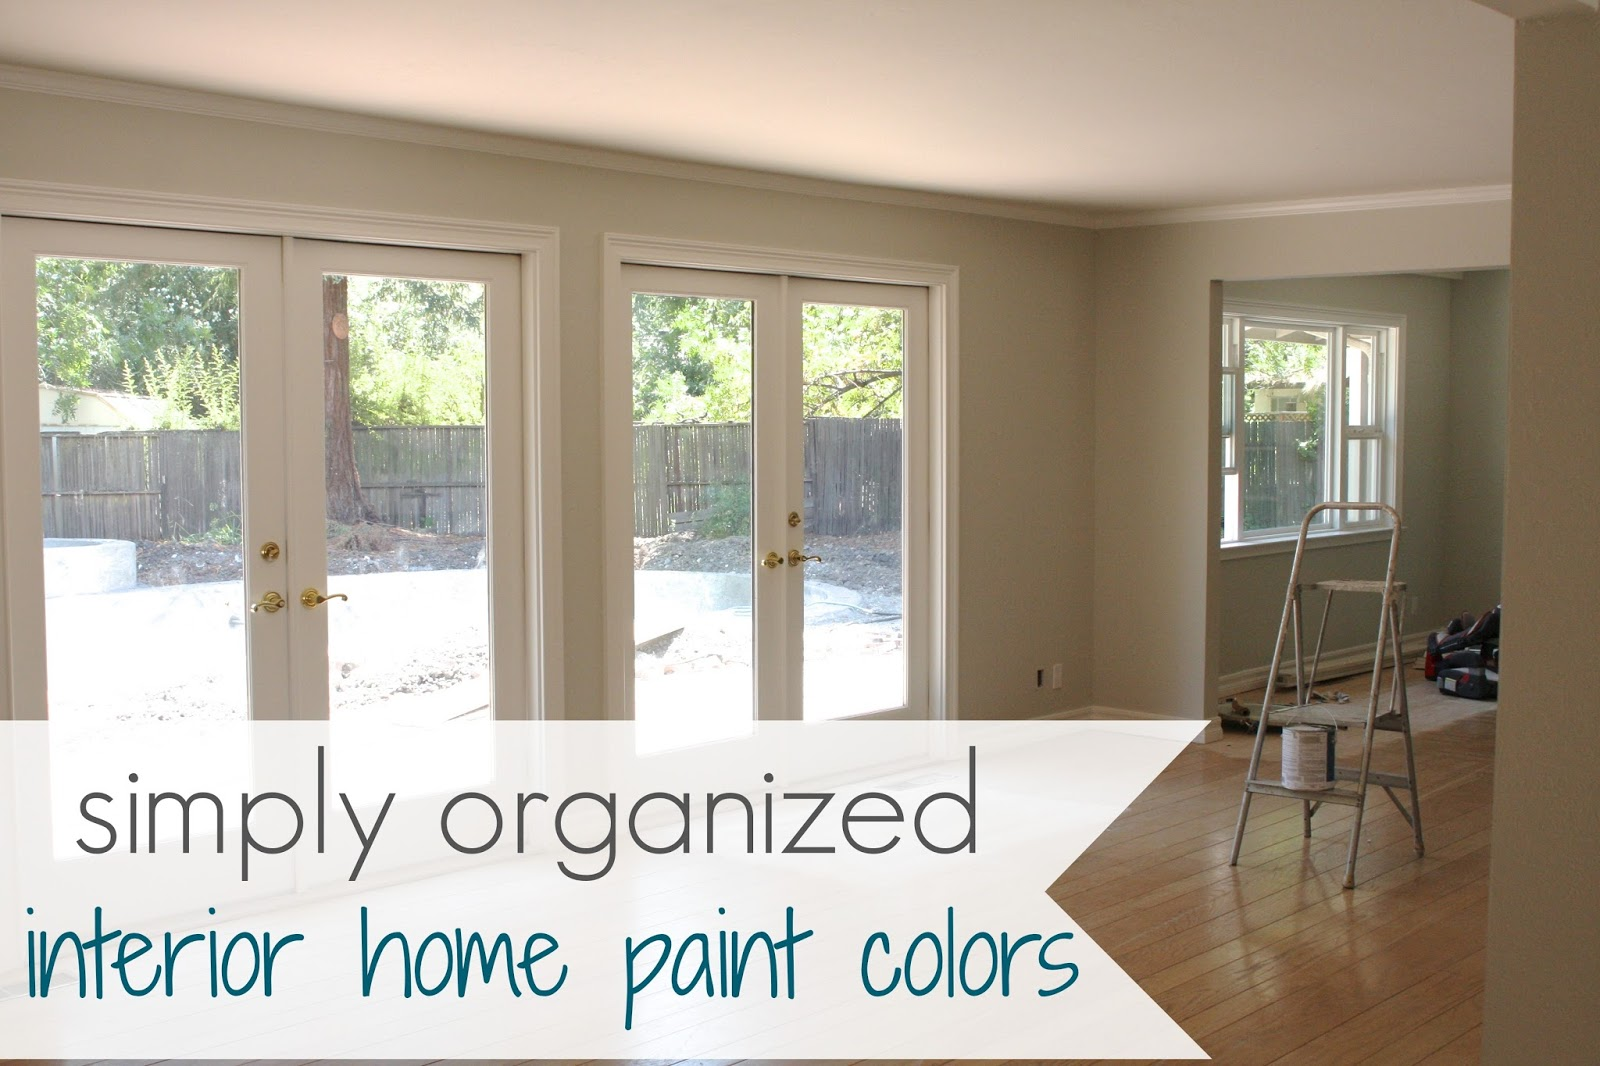 simply organized home paint colors main